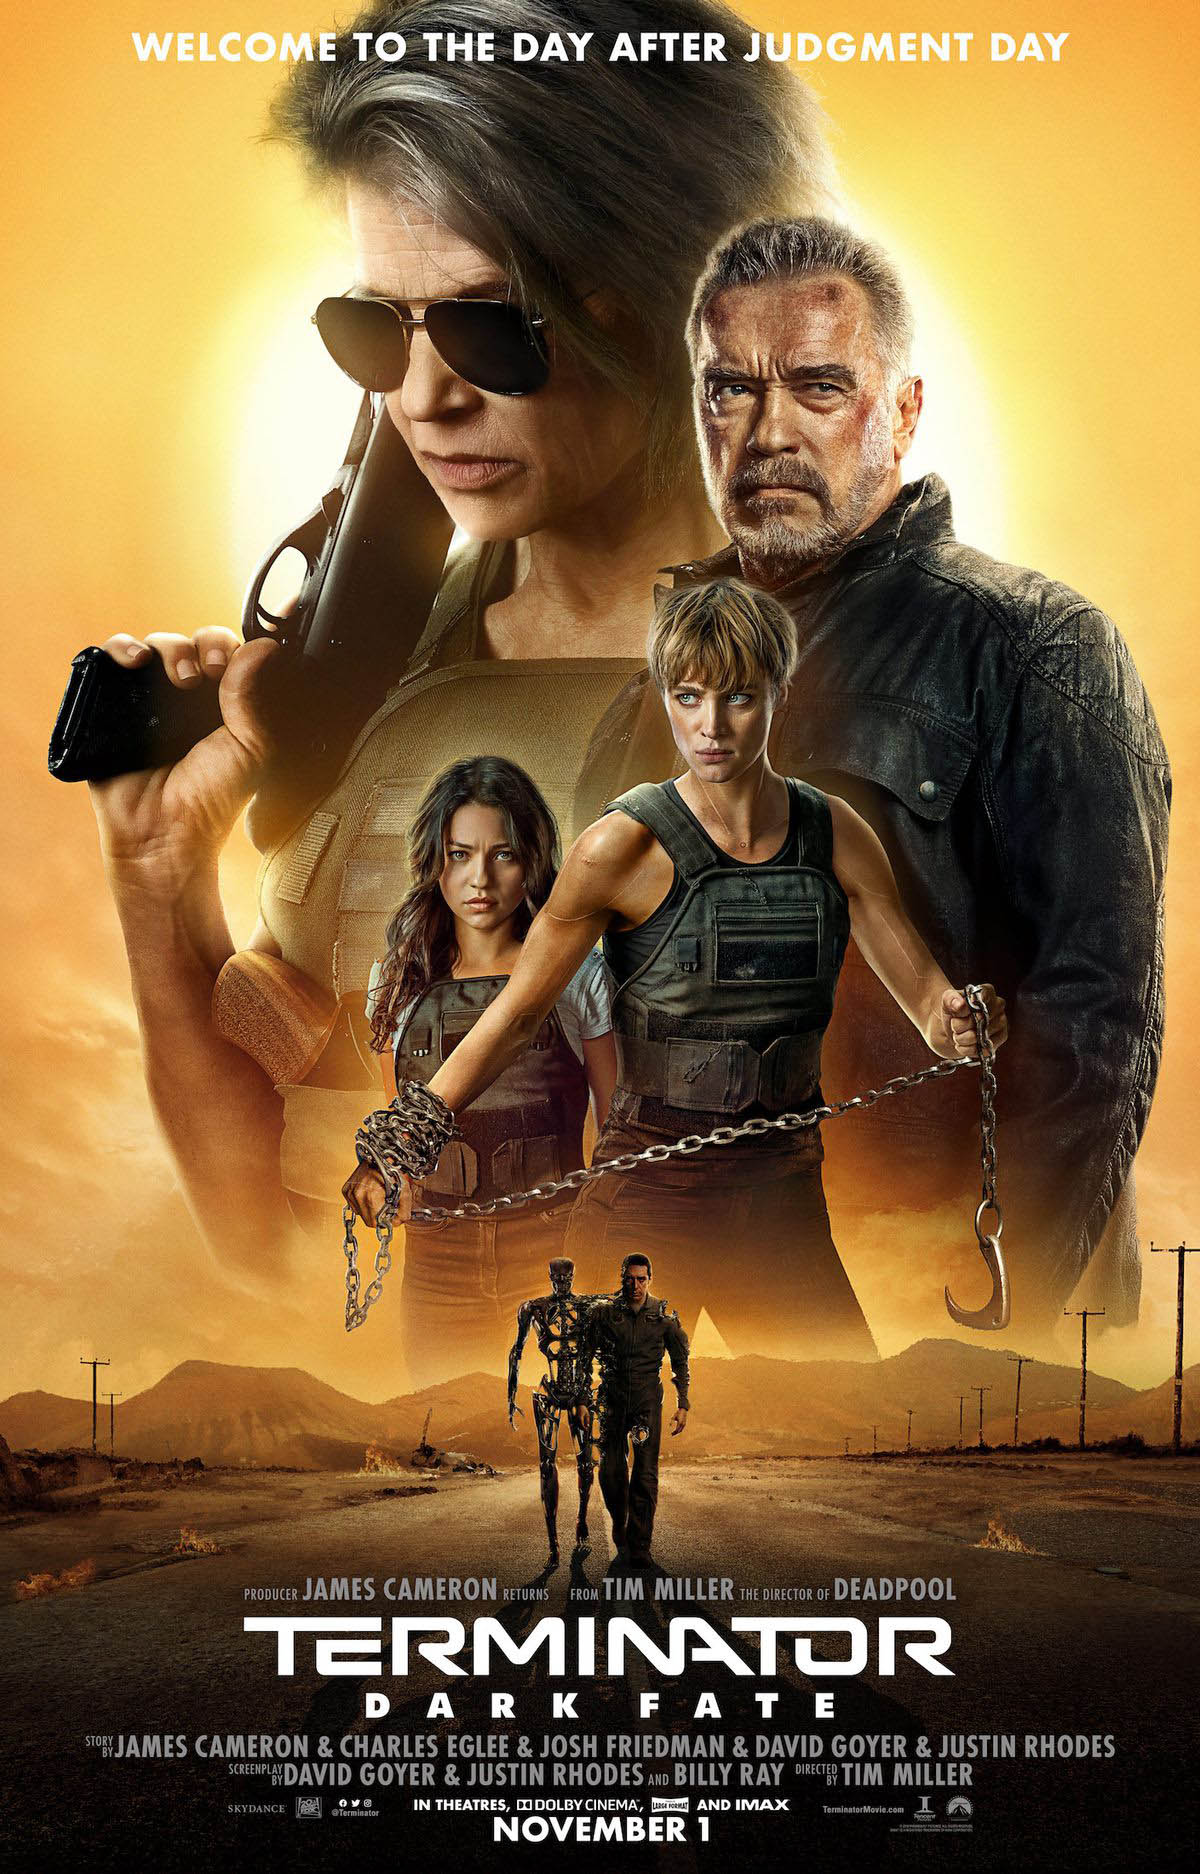 Sarah Connor has returned from far away, and she's gearing up with a team of agents who will fight against T-1000.